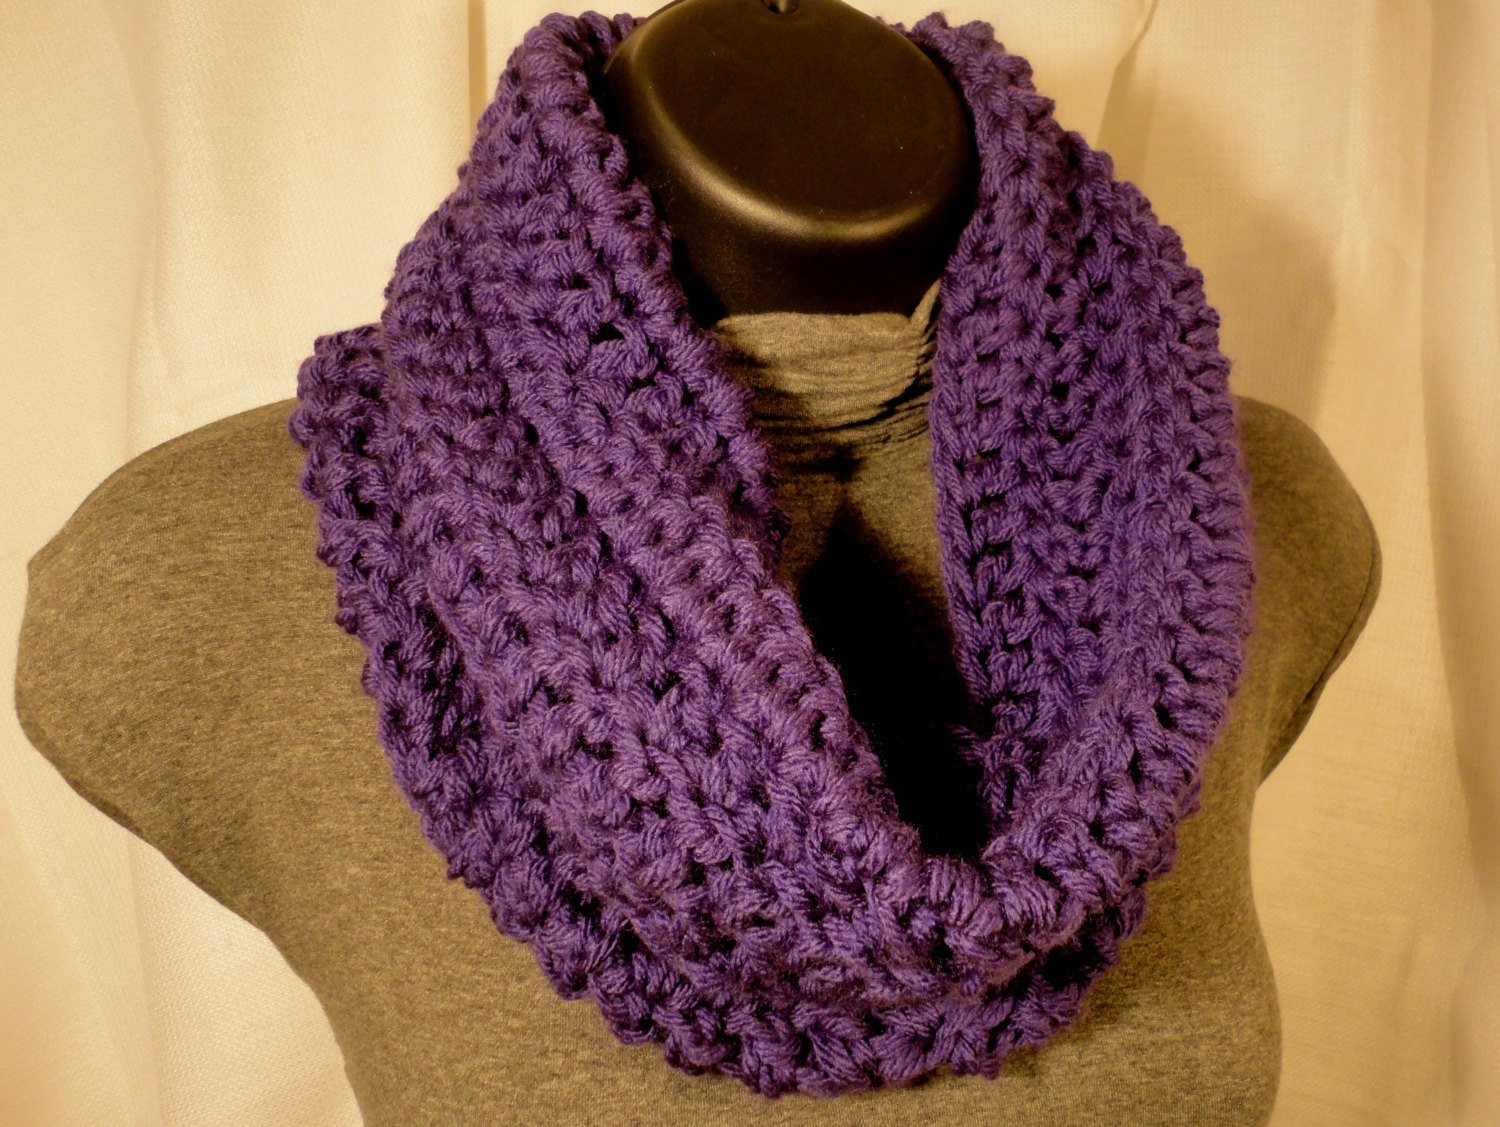 Crochet Cowl Scarf Awesome All In E Crochet Cowl Neck Hood and Scarf Item by Of Awesome 42 Pics Crochet Cowl Scarf